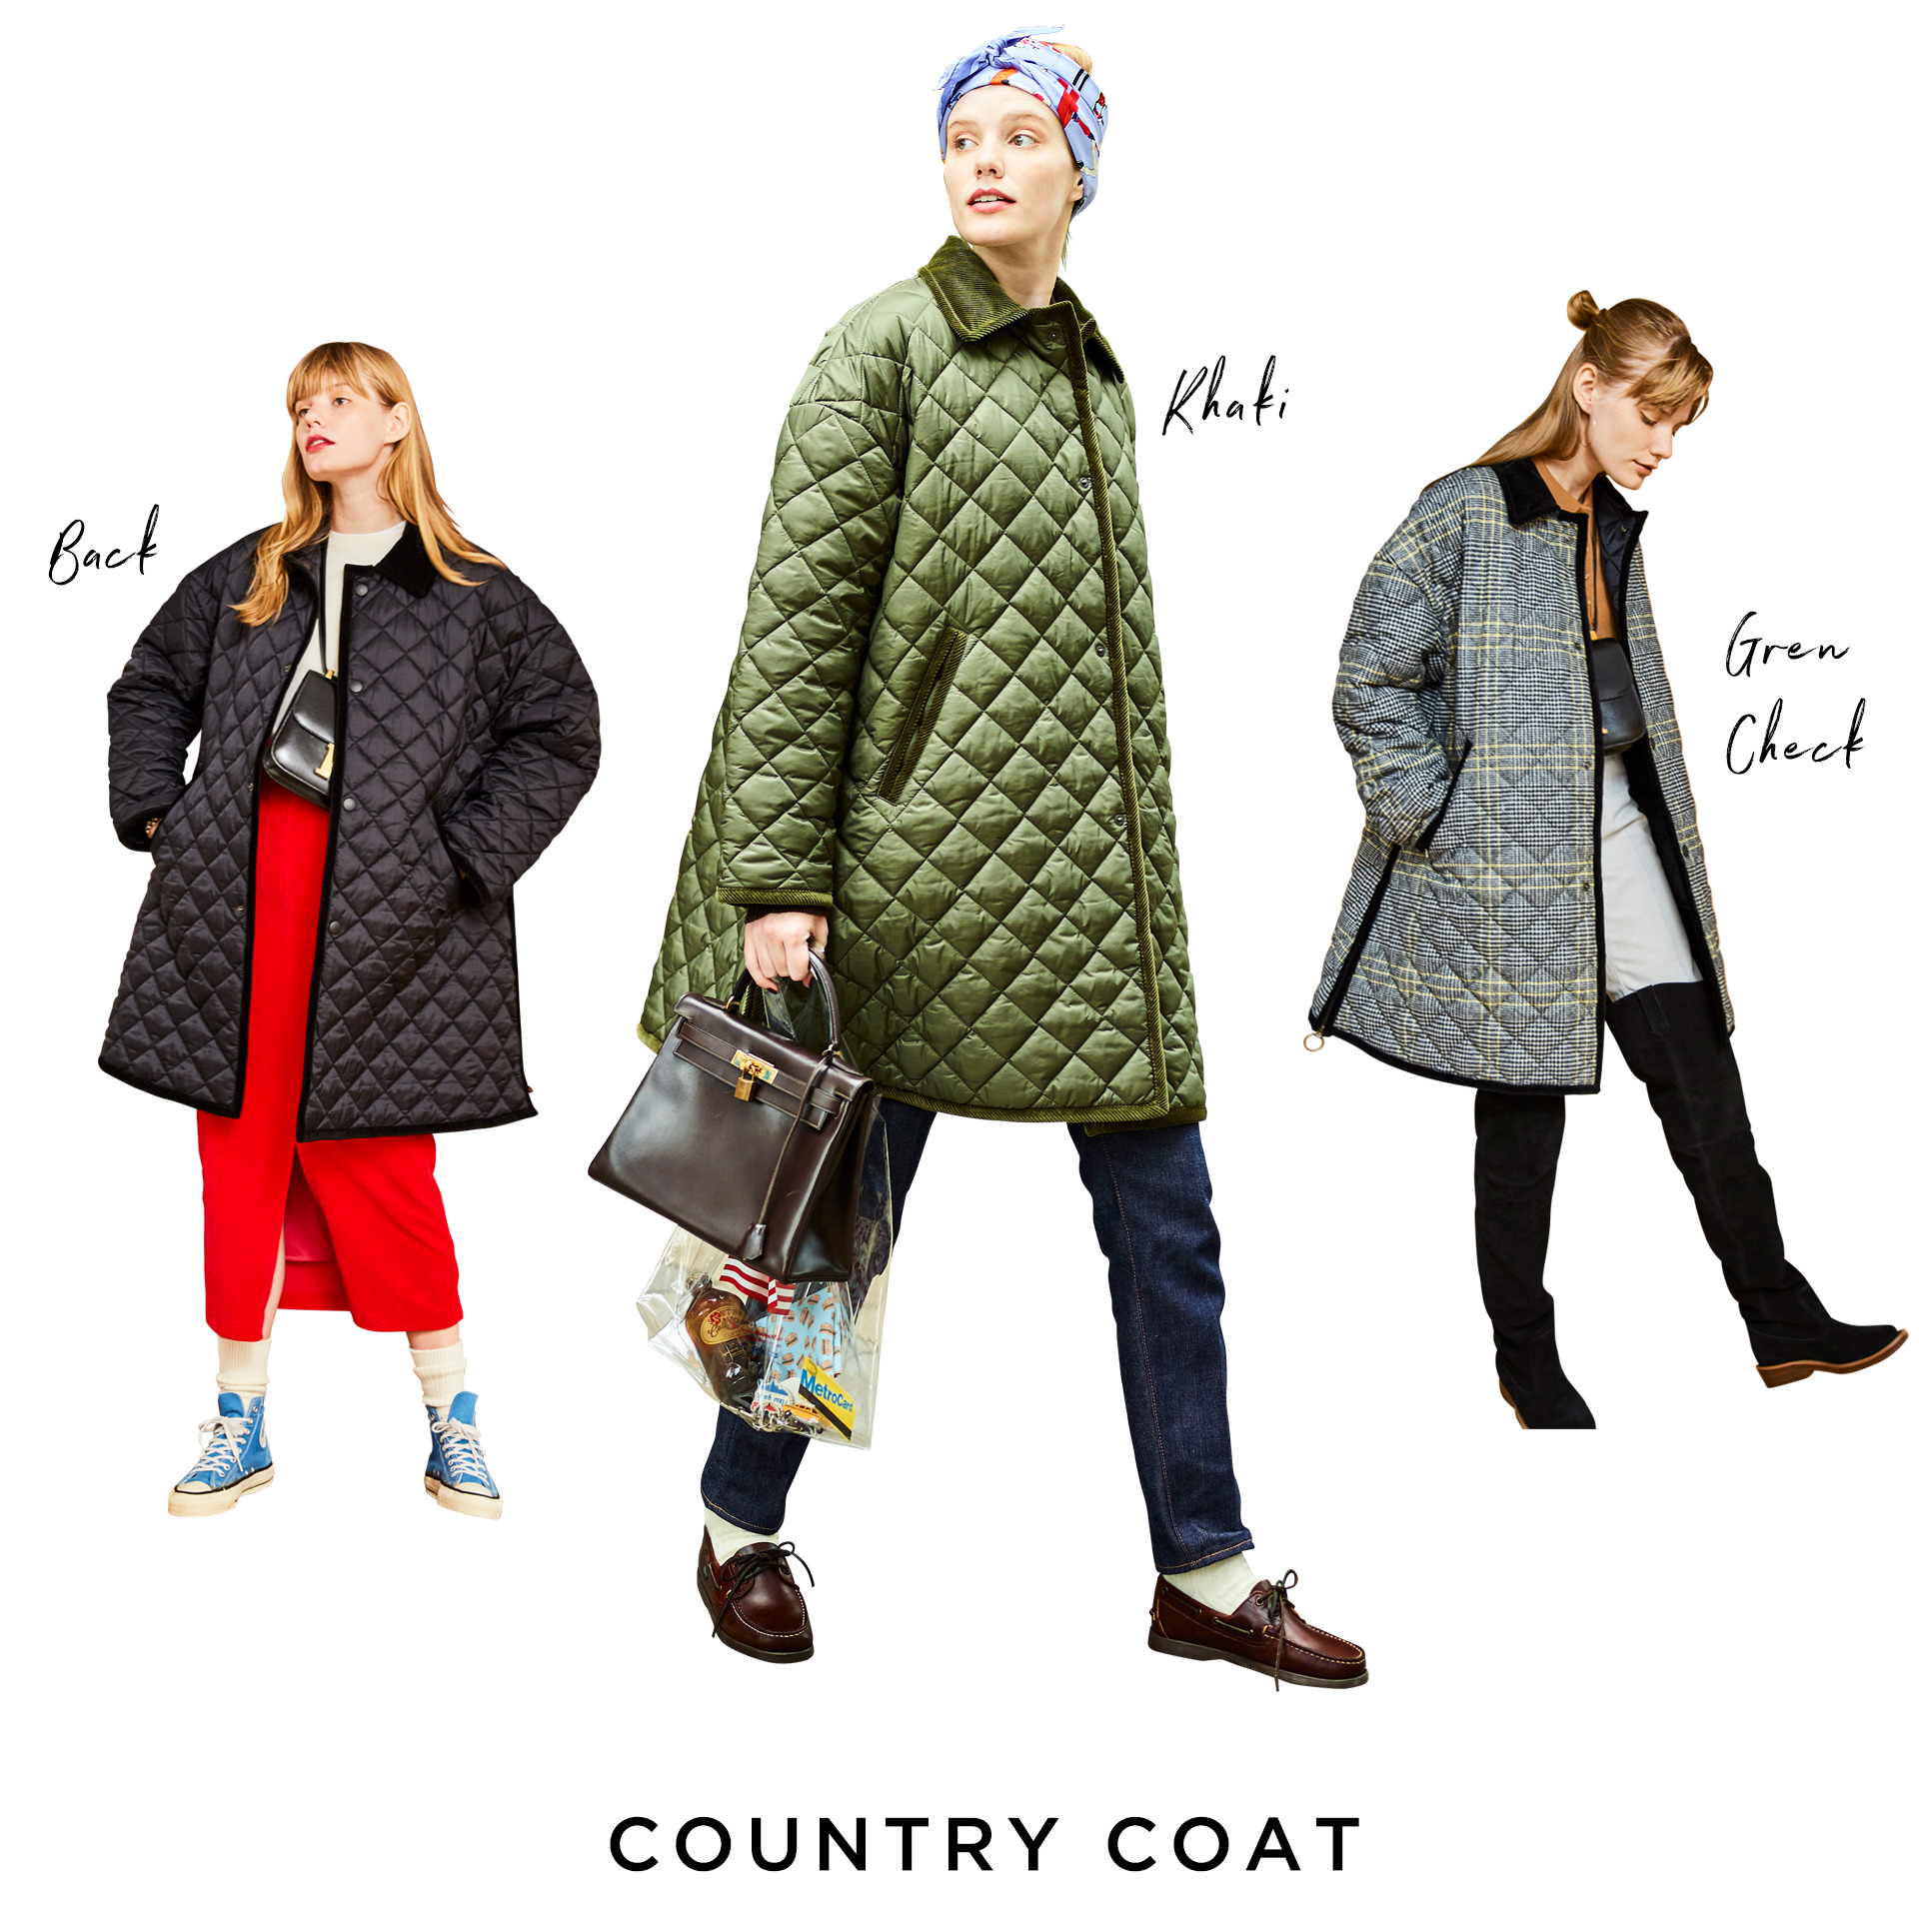 NEWS_COUNTRYCOAT_01